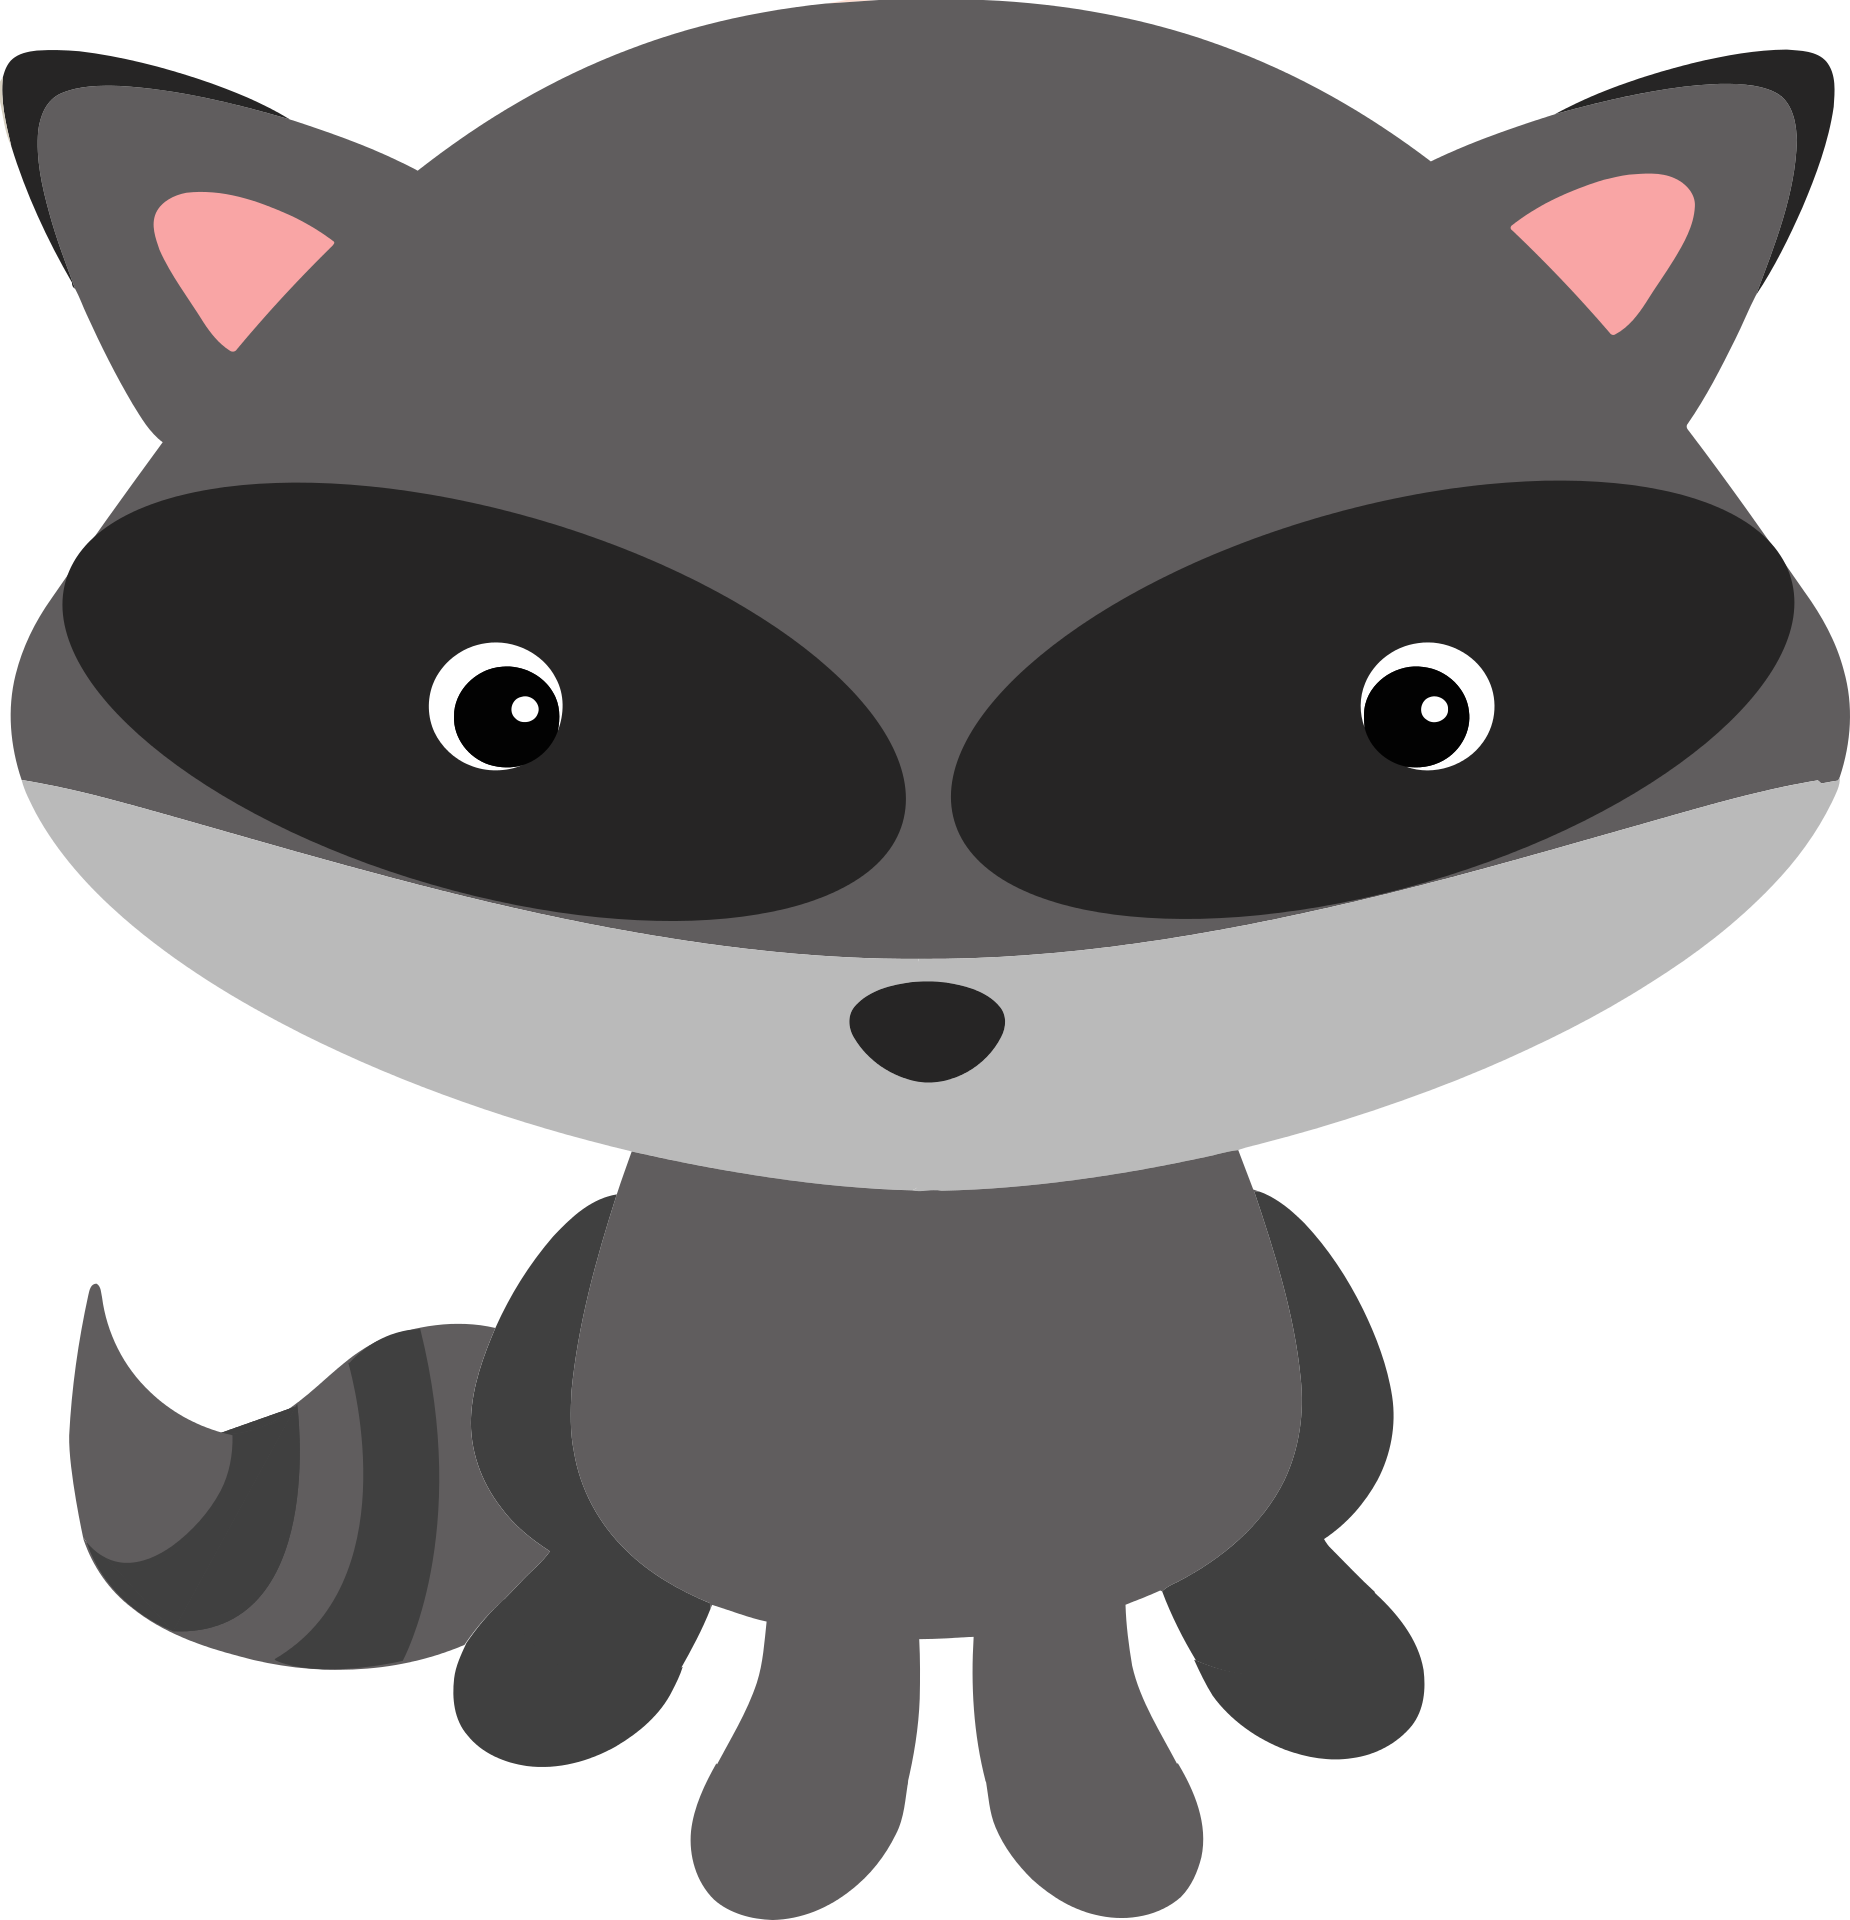 Raccoon t shirt animal. Woodland clipart gray fox